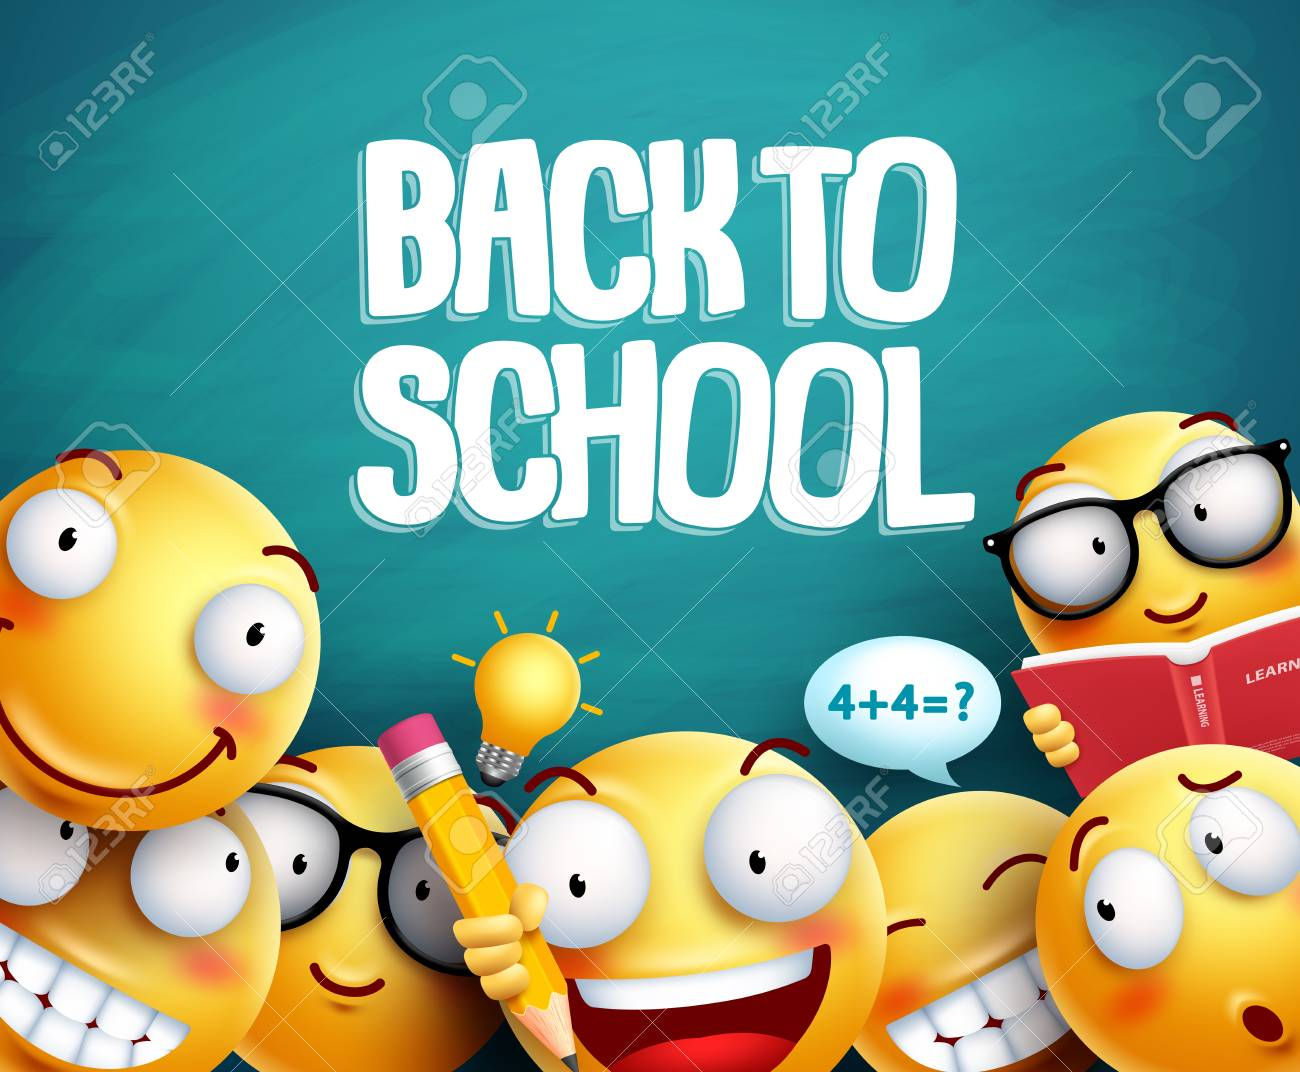 Back to school smileys vector design. Yellow student emoticons with facial expressions studying in green blackboard background for education. Vector illustration. - 99199130